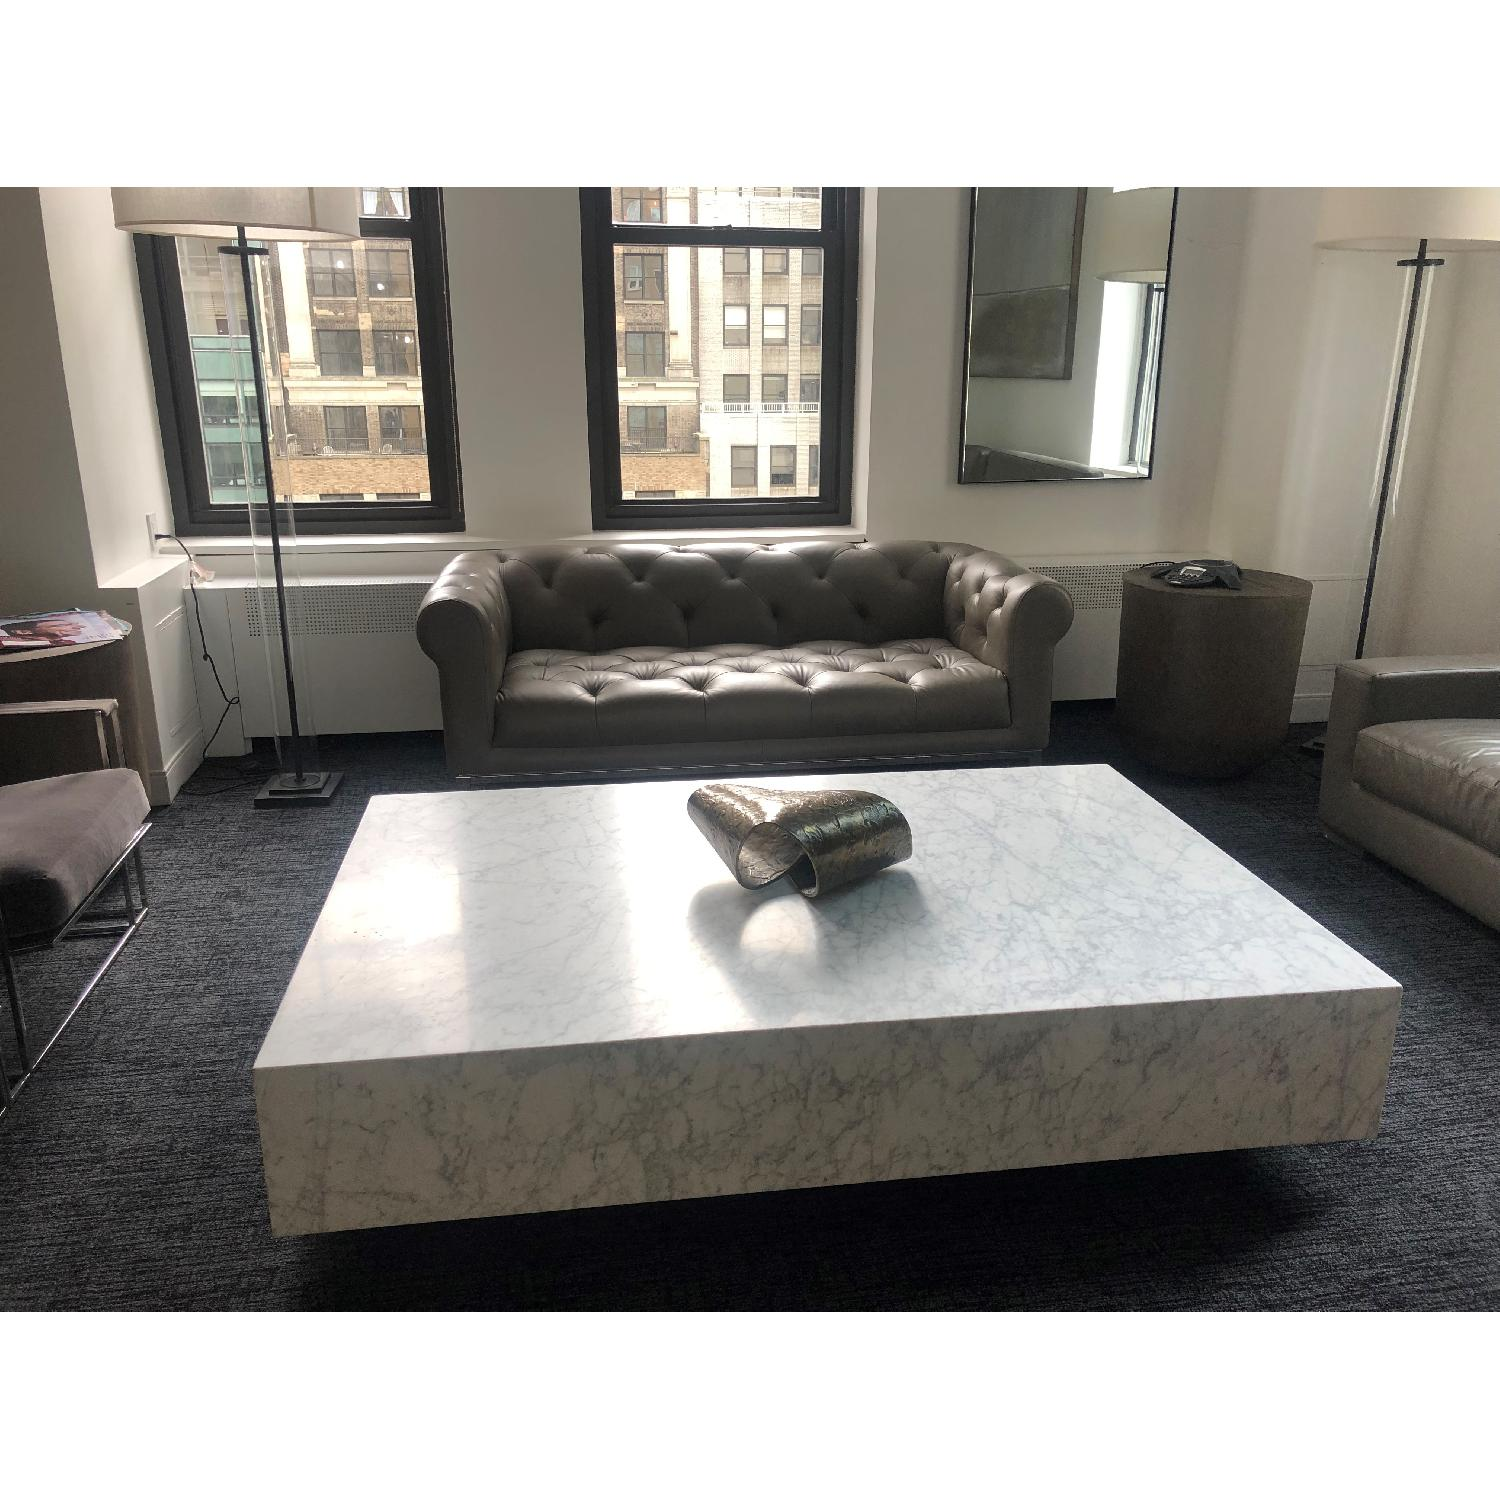 Restoration Hardware Plinth White Marble Coffee Table - image-1